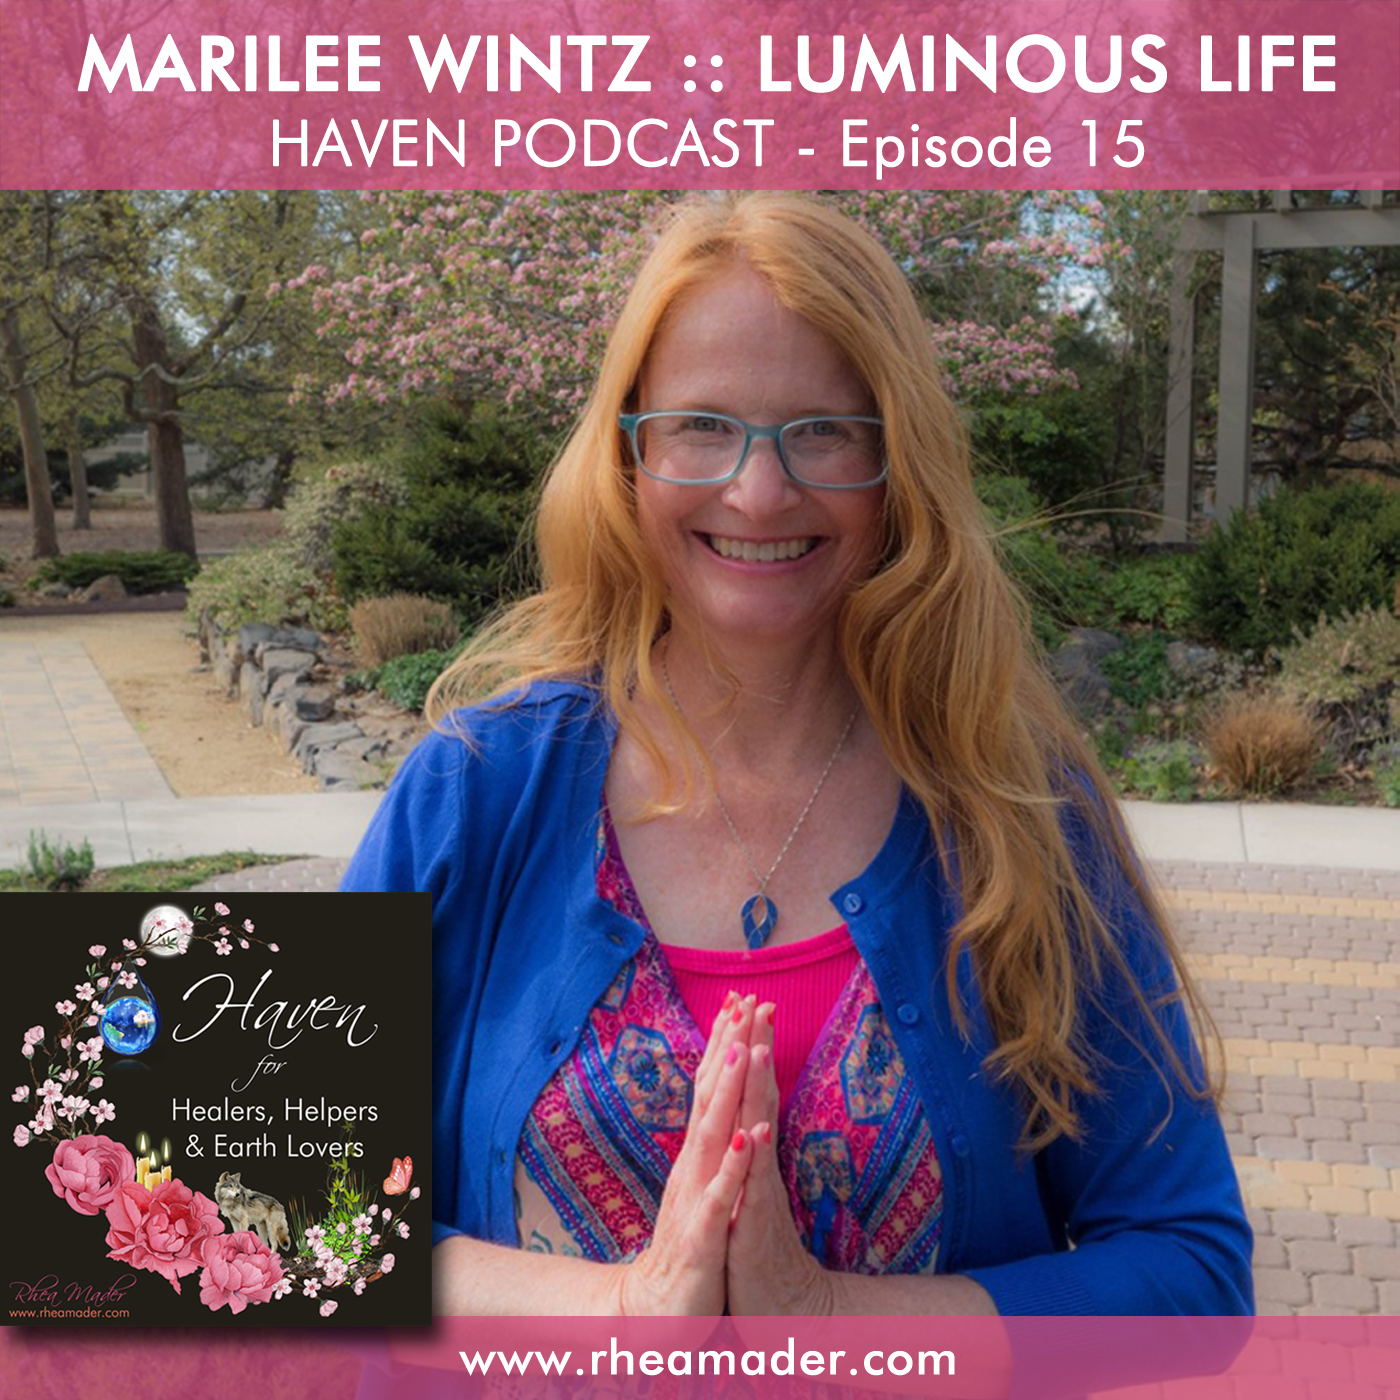 MARILEE WINTZ: Luminous Life